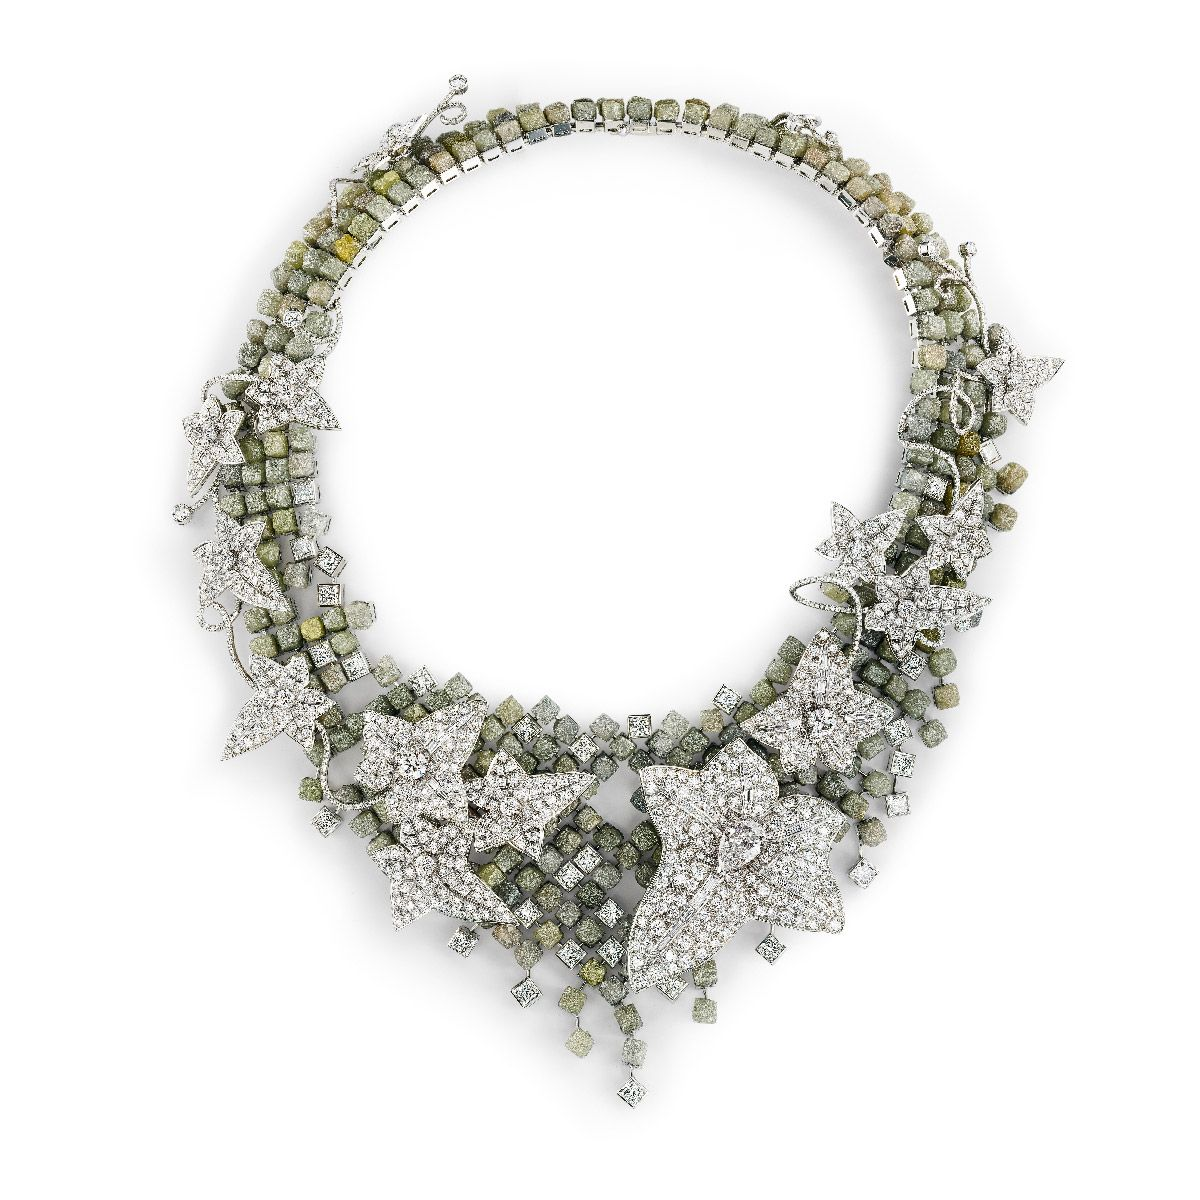 L'Artisan du Rêve  - inspired by the City of Light, Paris Faceted and rough diamond necklace